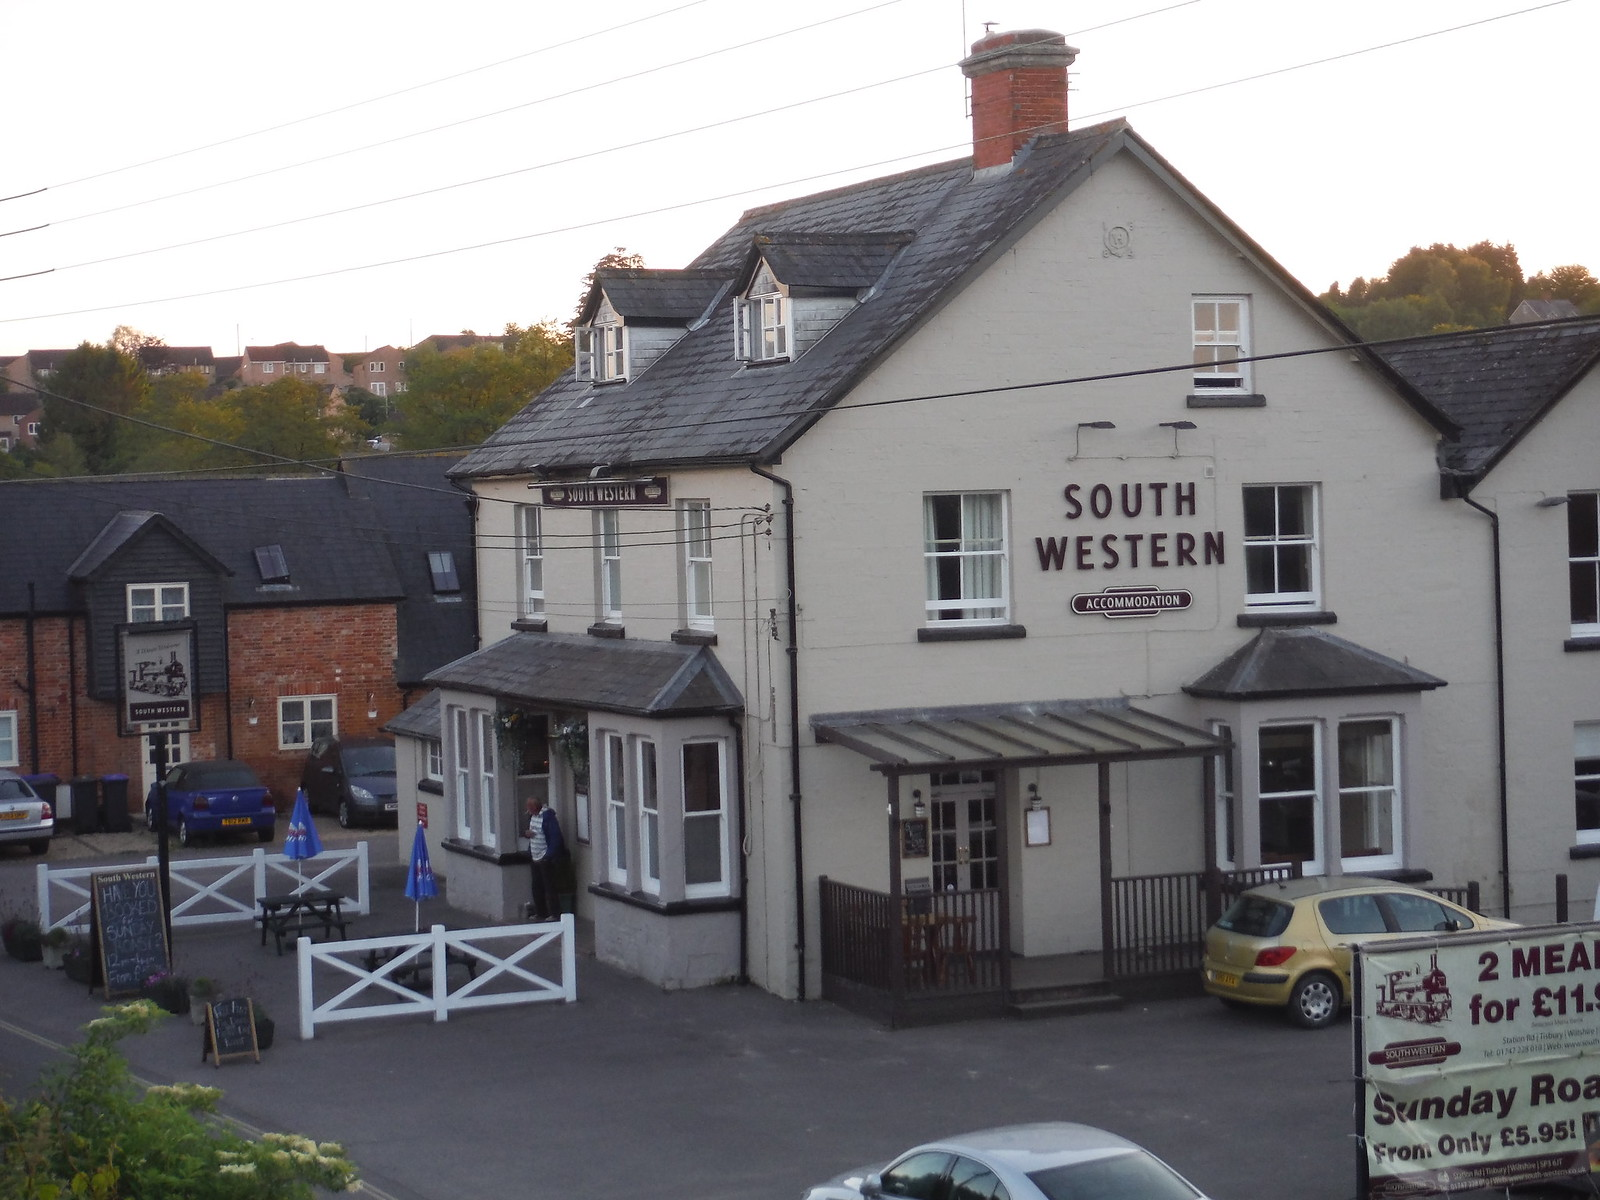 The South Western by Tisbury Station SWC Walk 249 Tisbury Circular via Dinton and Fovant